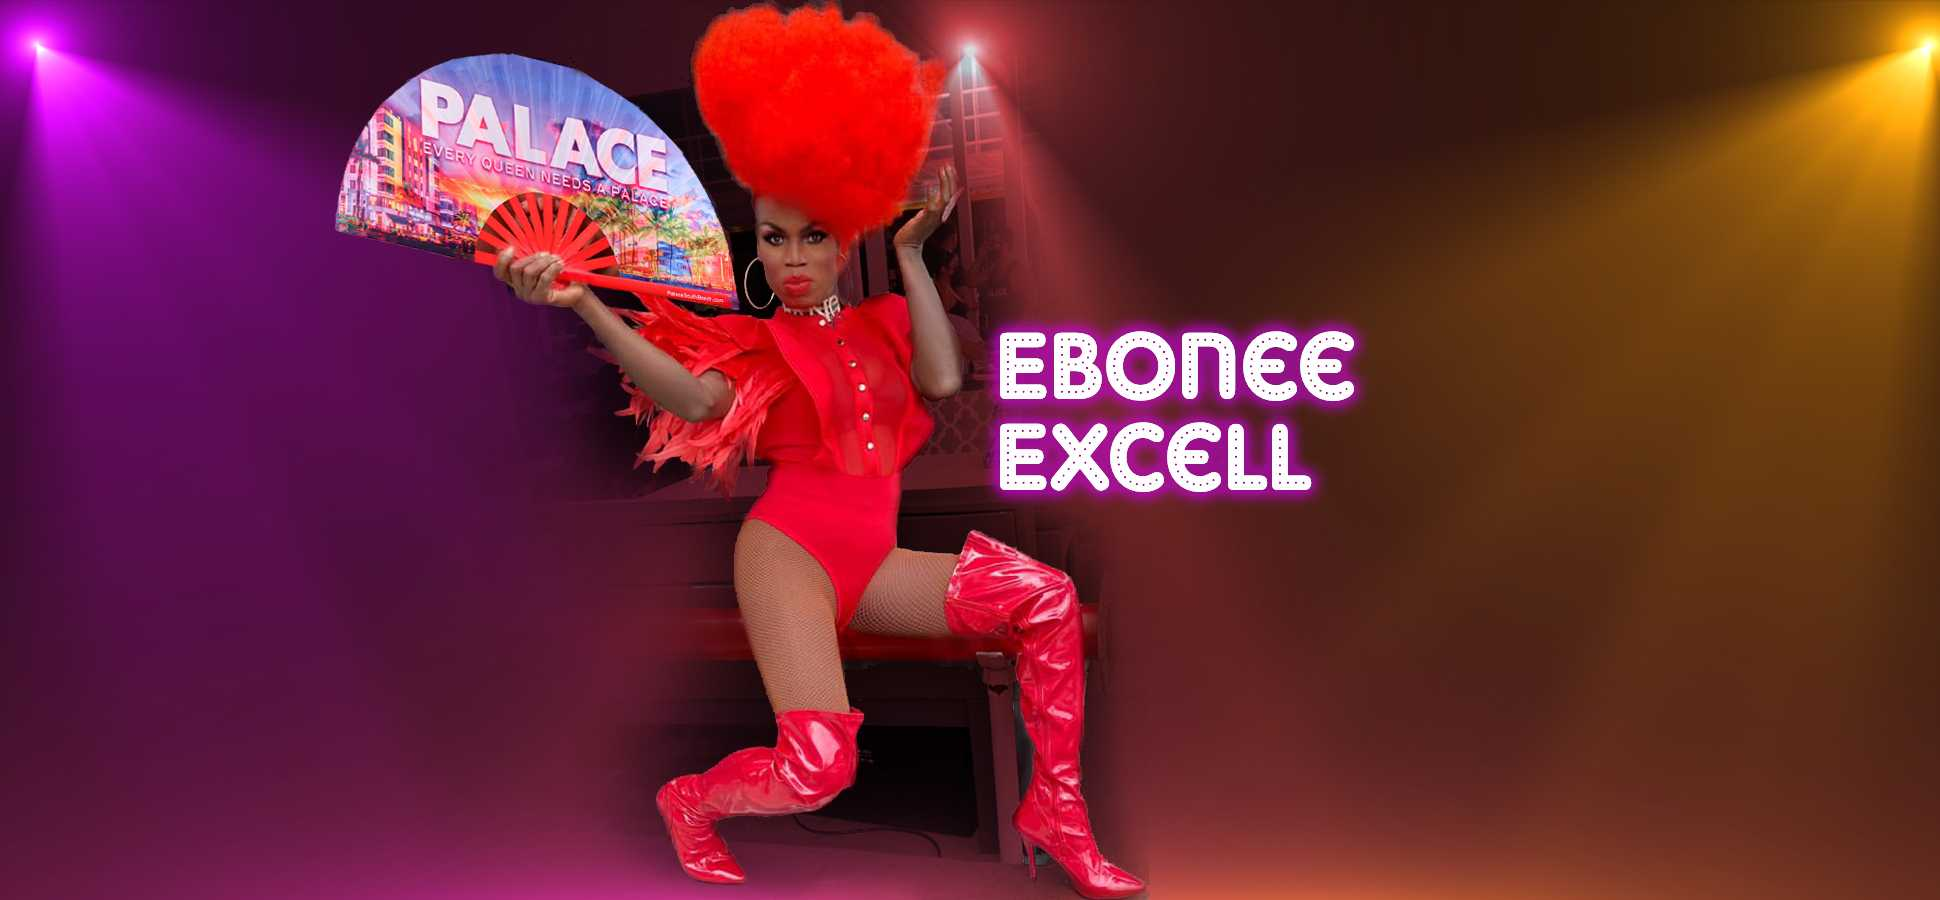 Ebonee Excell